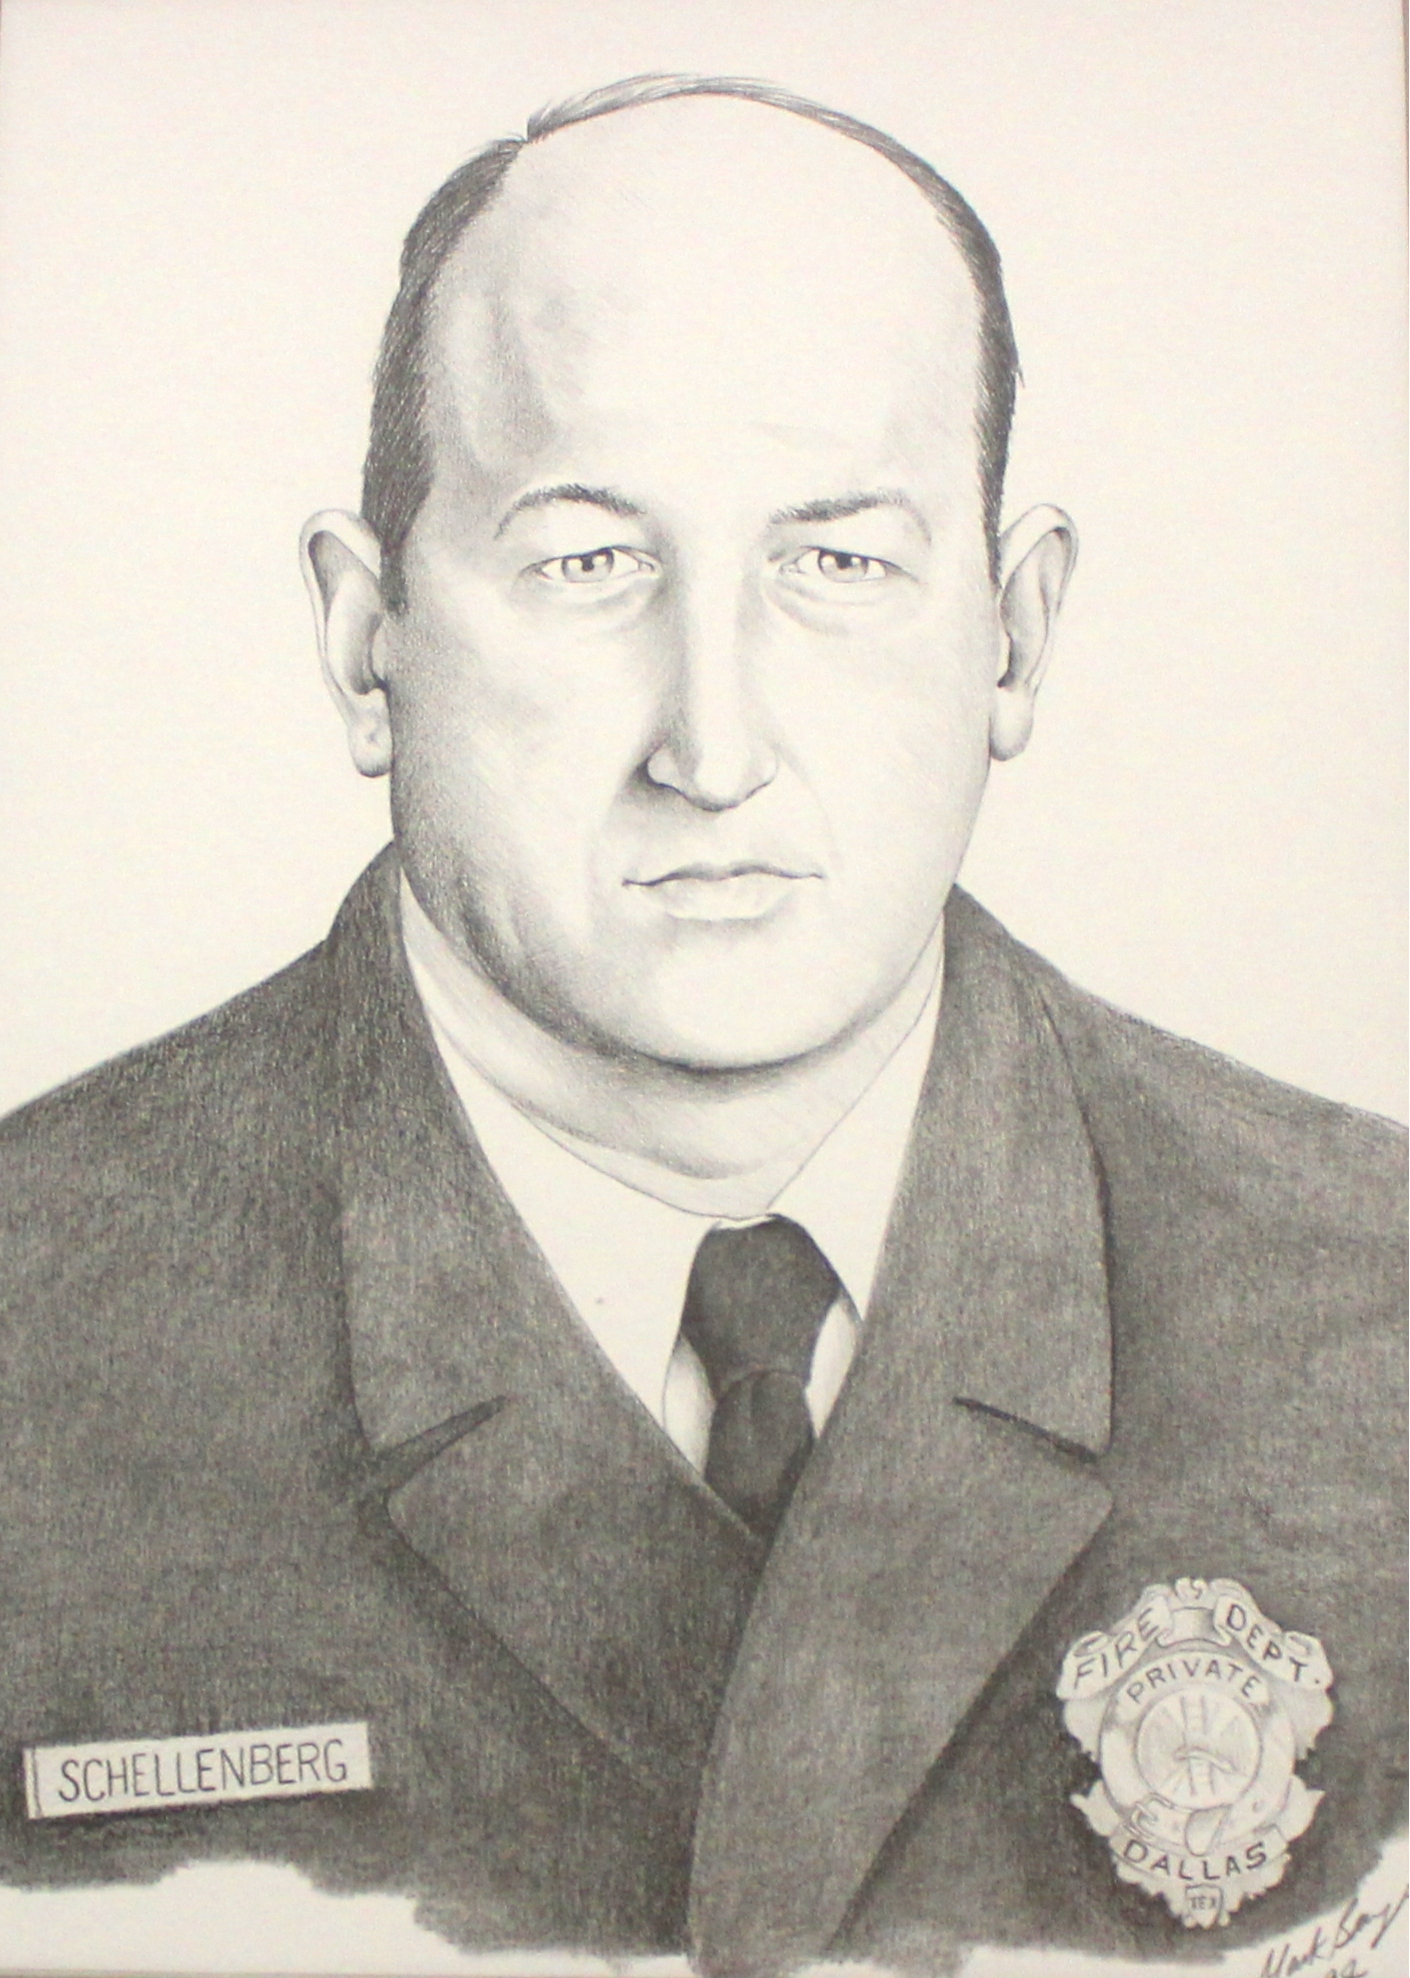 3855f49fa28a4 Dallas Fire-Rescue stories of bravery and sacrifice  Andrew Schellenberg